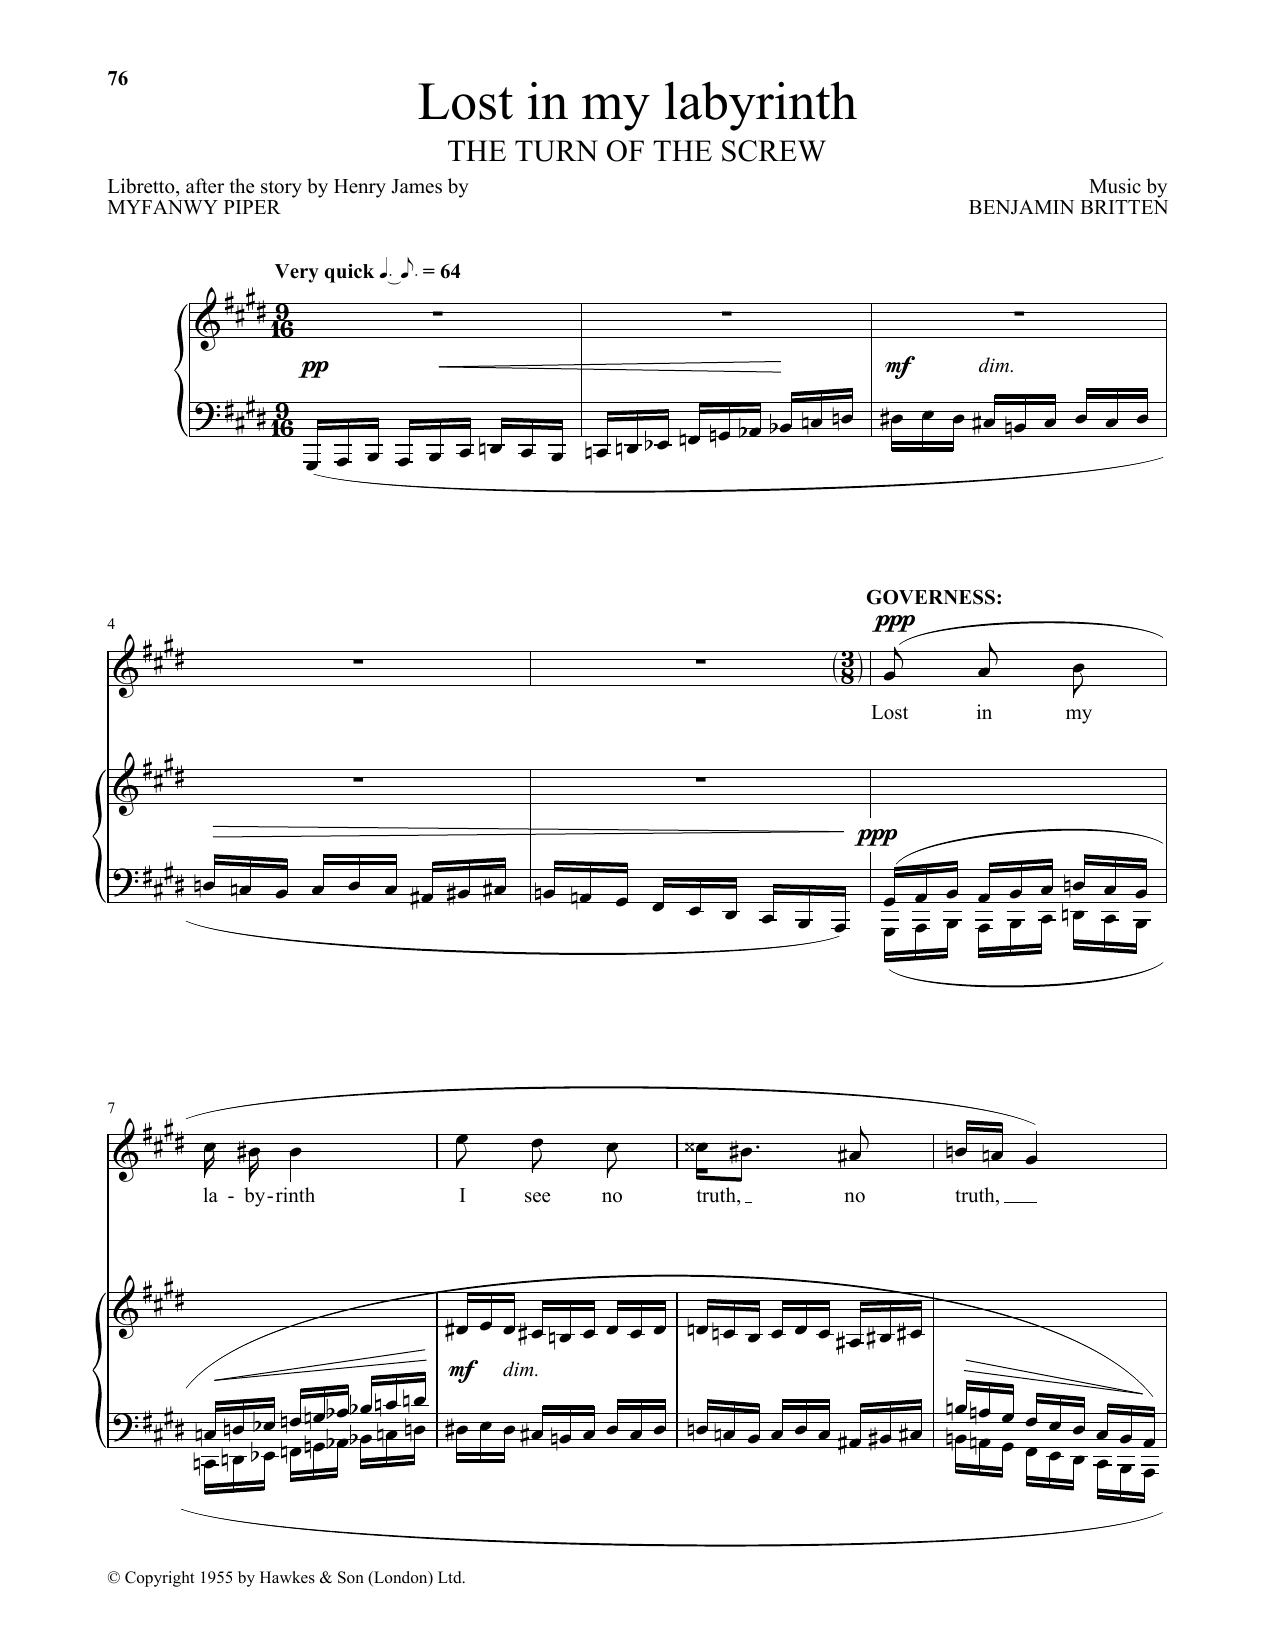 Benjamin Britten Lost in my labyrinth (from The Turn Of The Screw) sheet music notes and chords. Download Printable PDF.